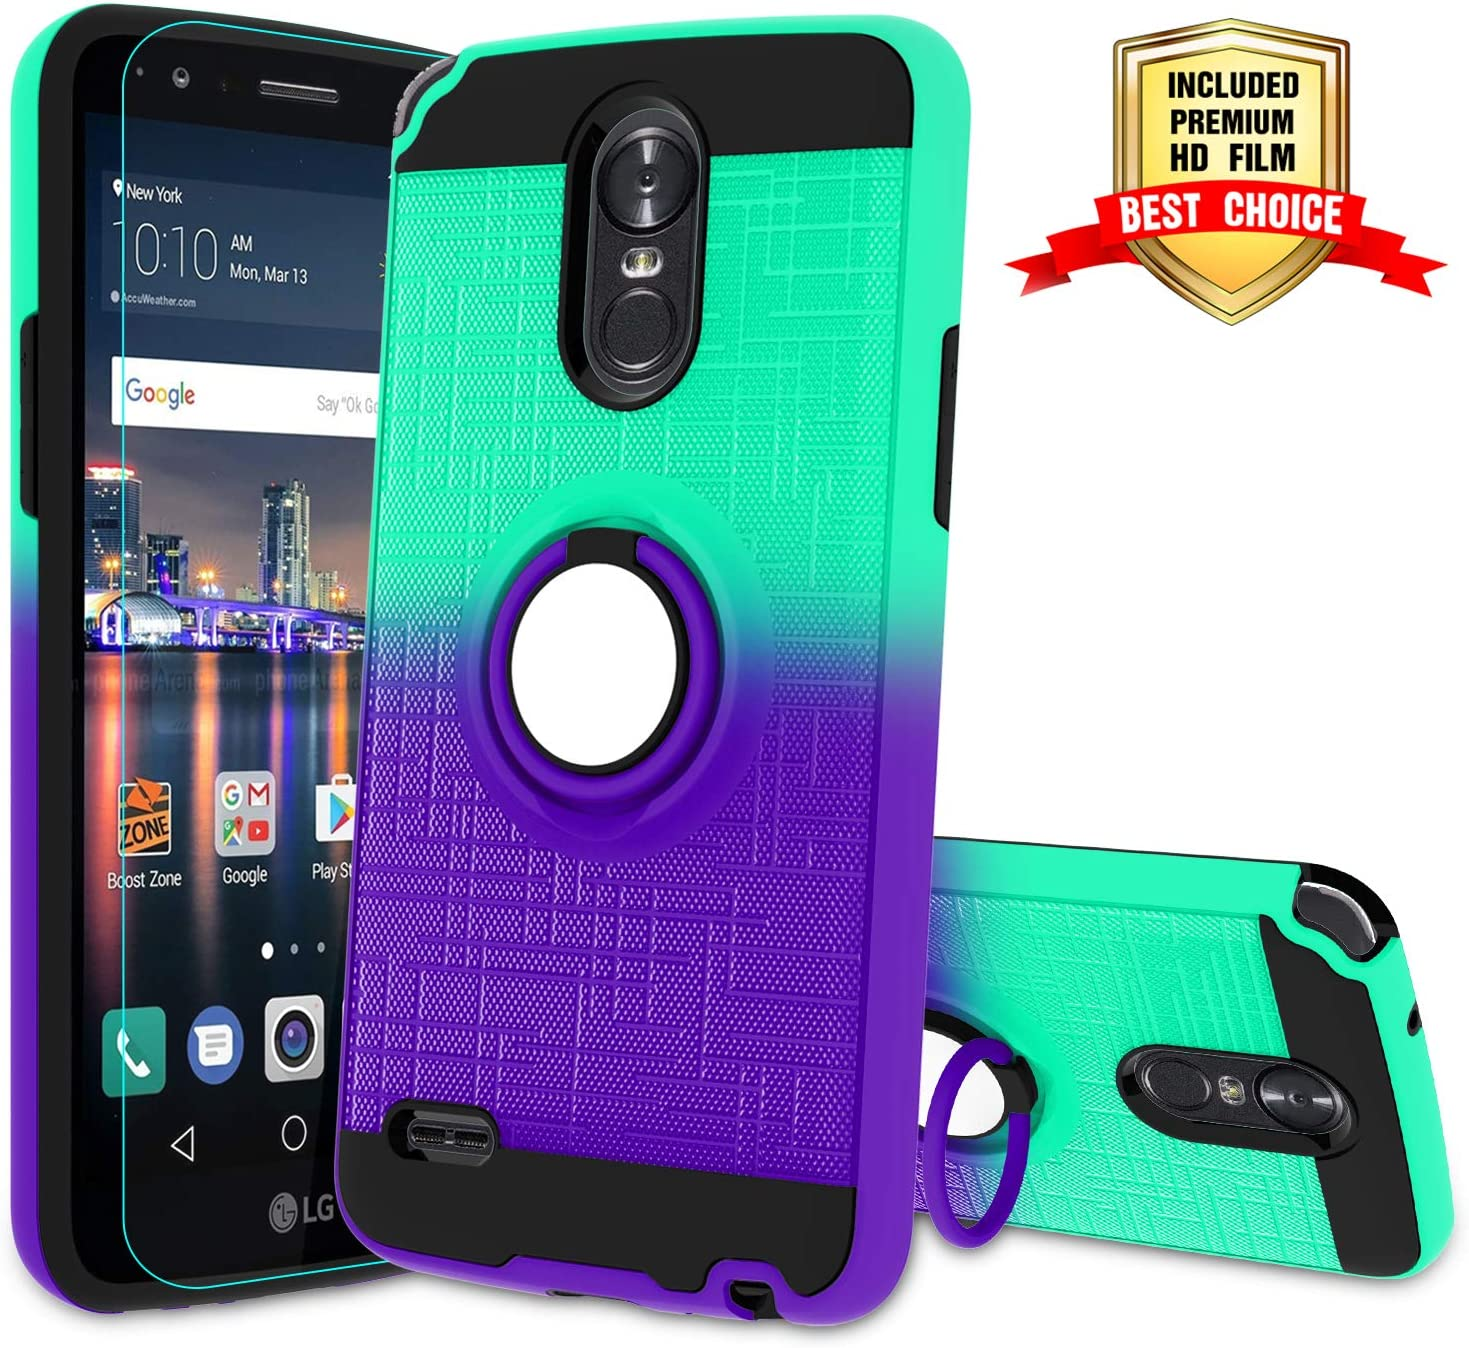 LG Stylo 3 Phone Case,LG Stylo 3 Plus, Stylus 3 Case with HD Screen Protector,Atump 360 Degree Rotating Ring Holder & Kickstand Bracket Phone Case Cover for LG LS777 Mint/Purple